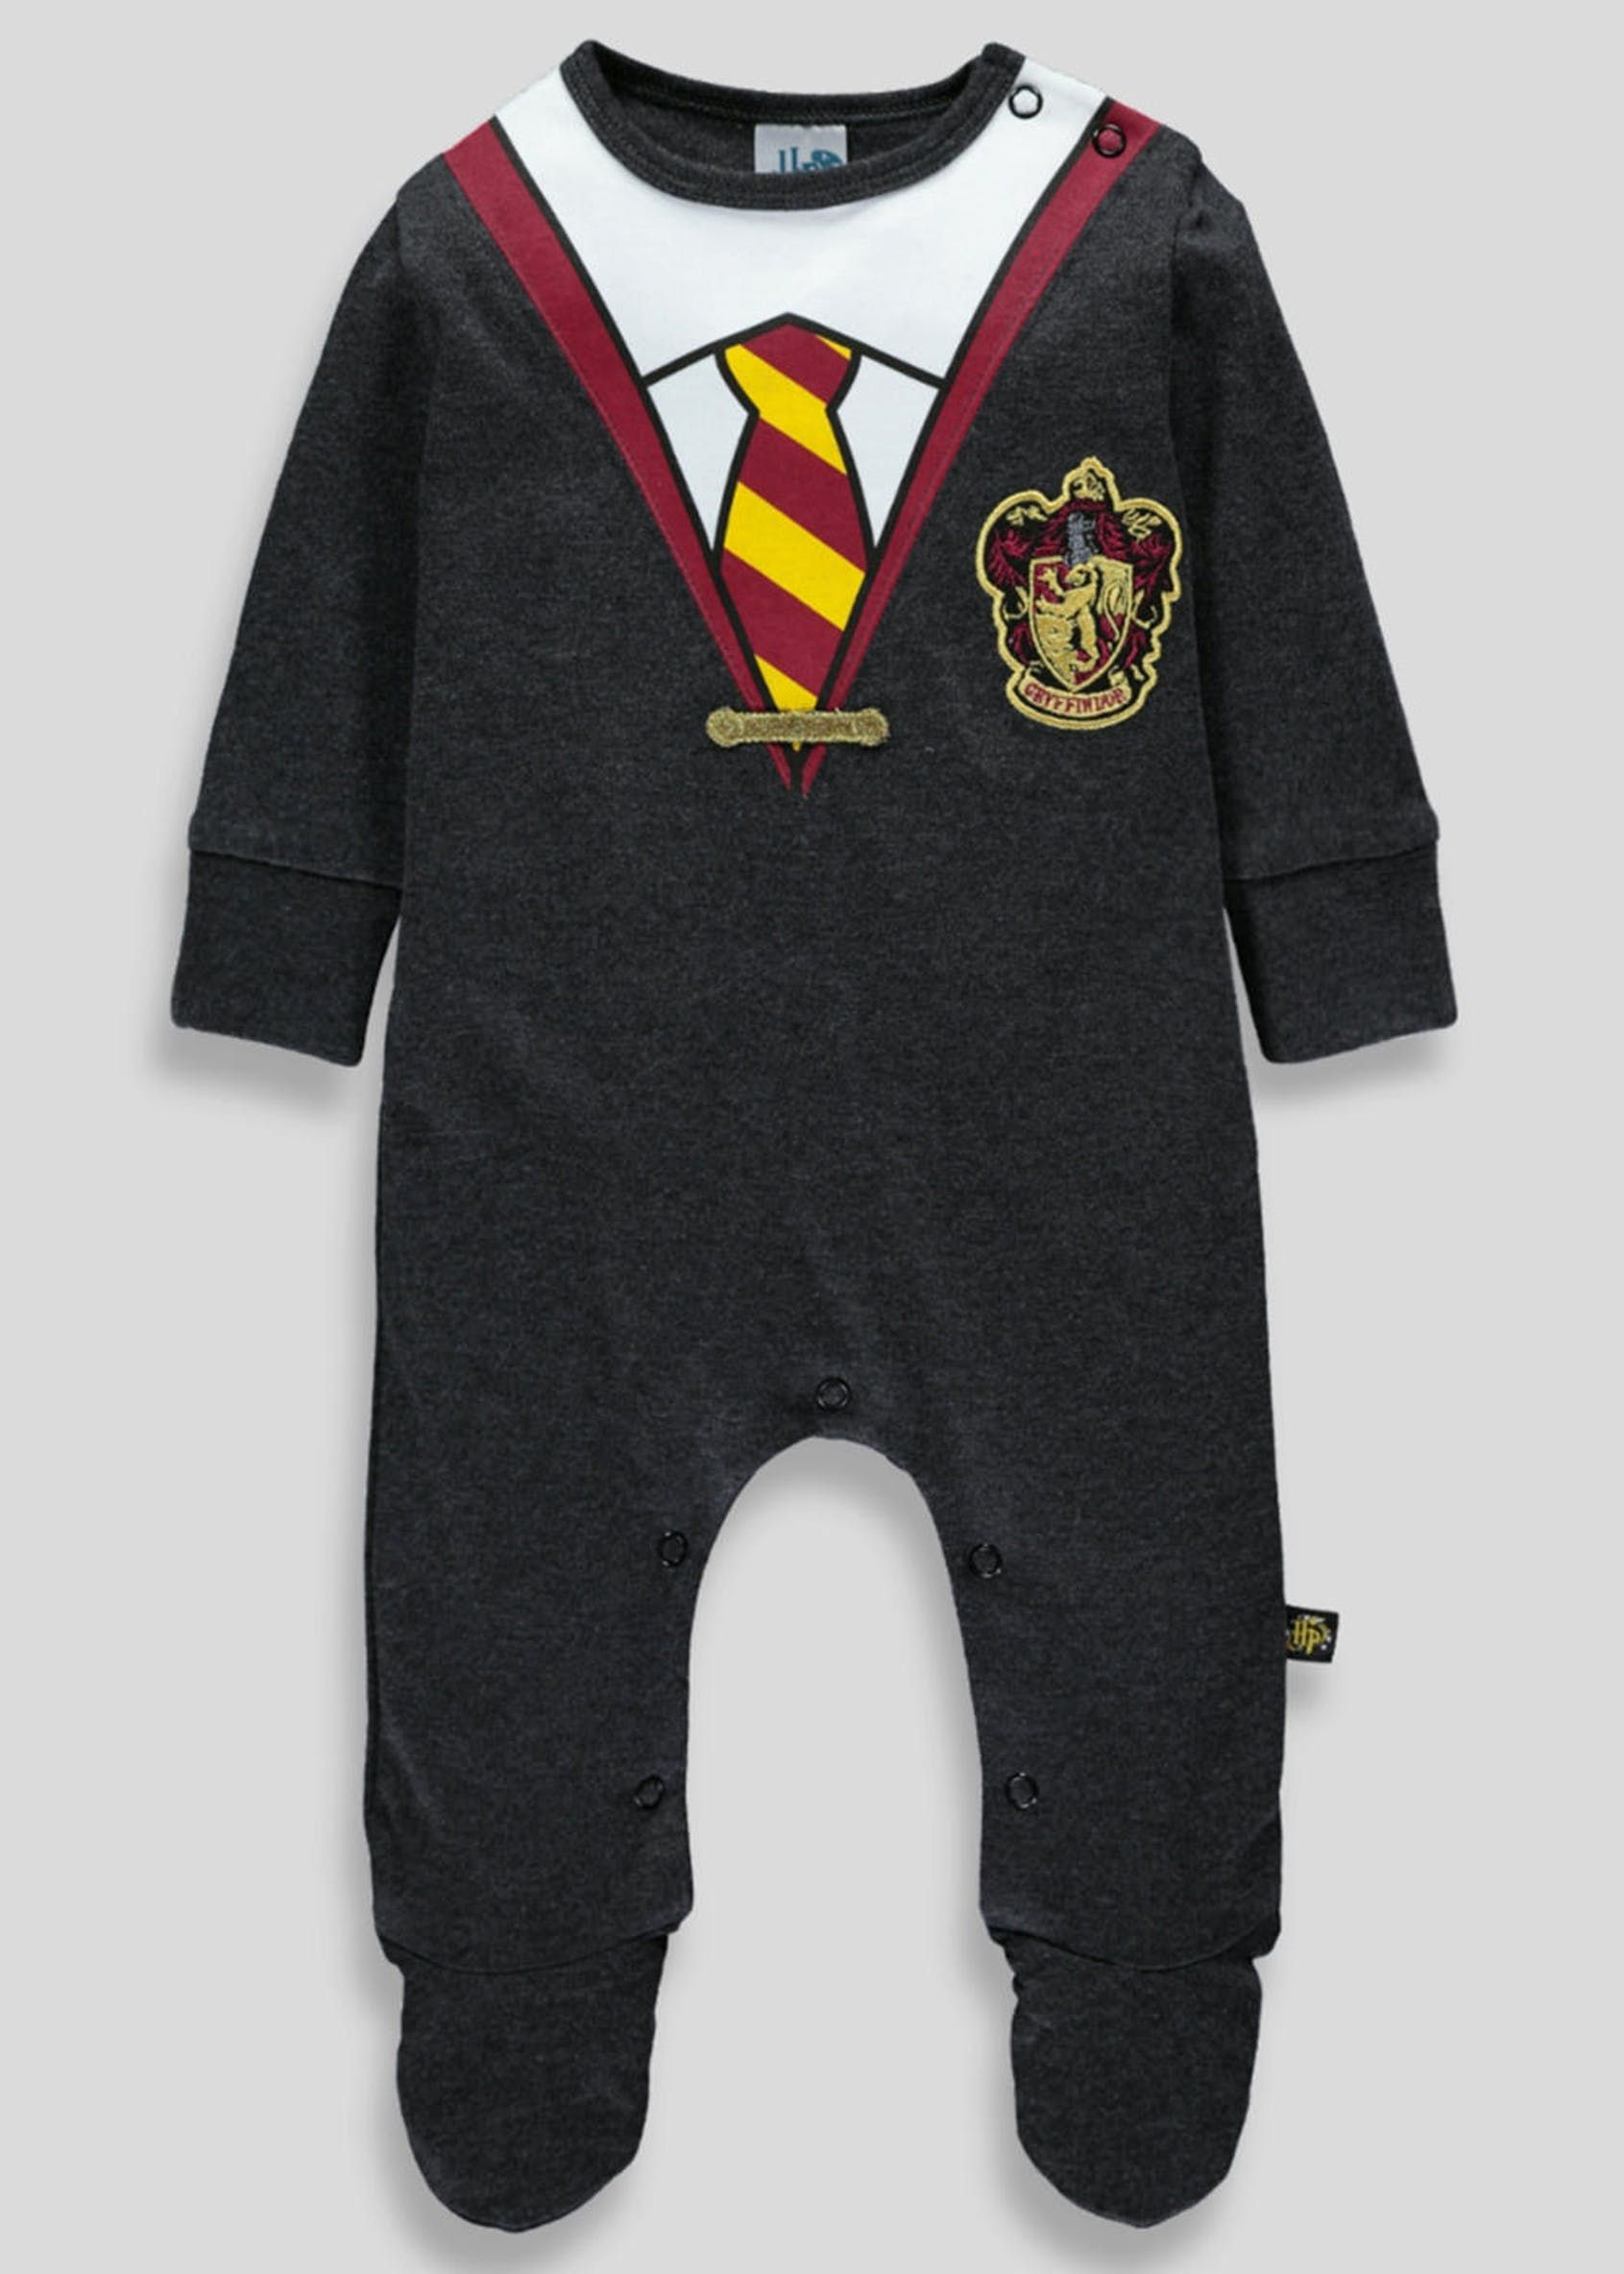 f1c2e0ca0511 Unisex Harry Potter Babygrow (Newborn-12mths) – Grey